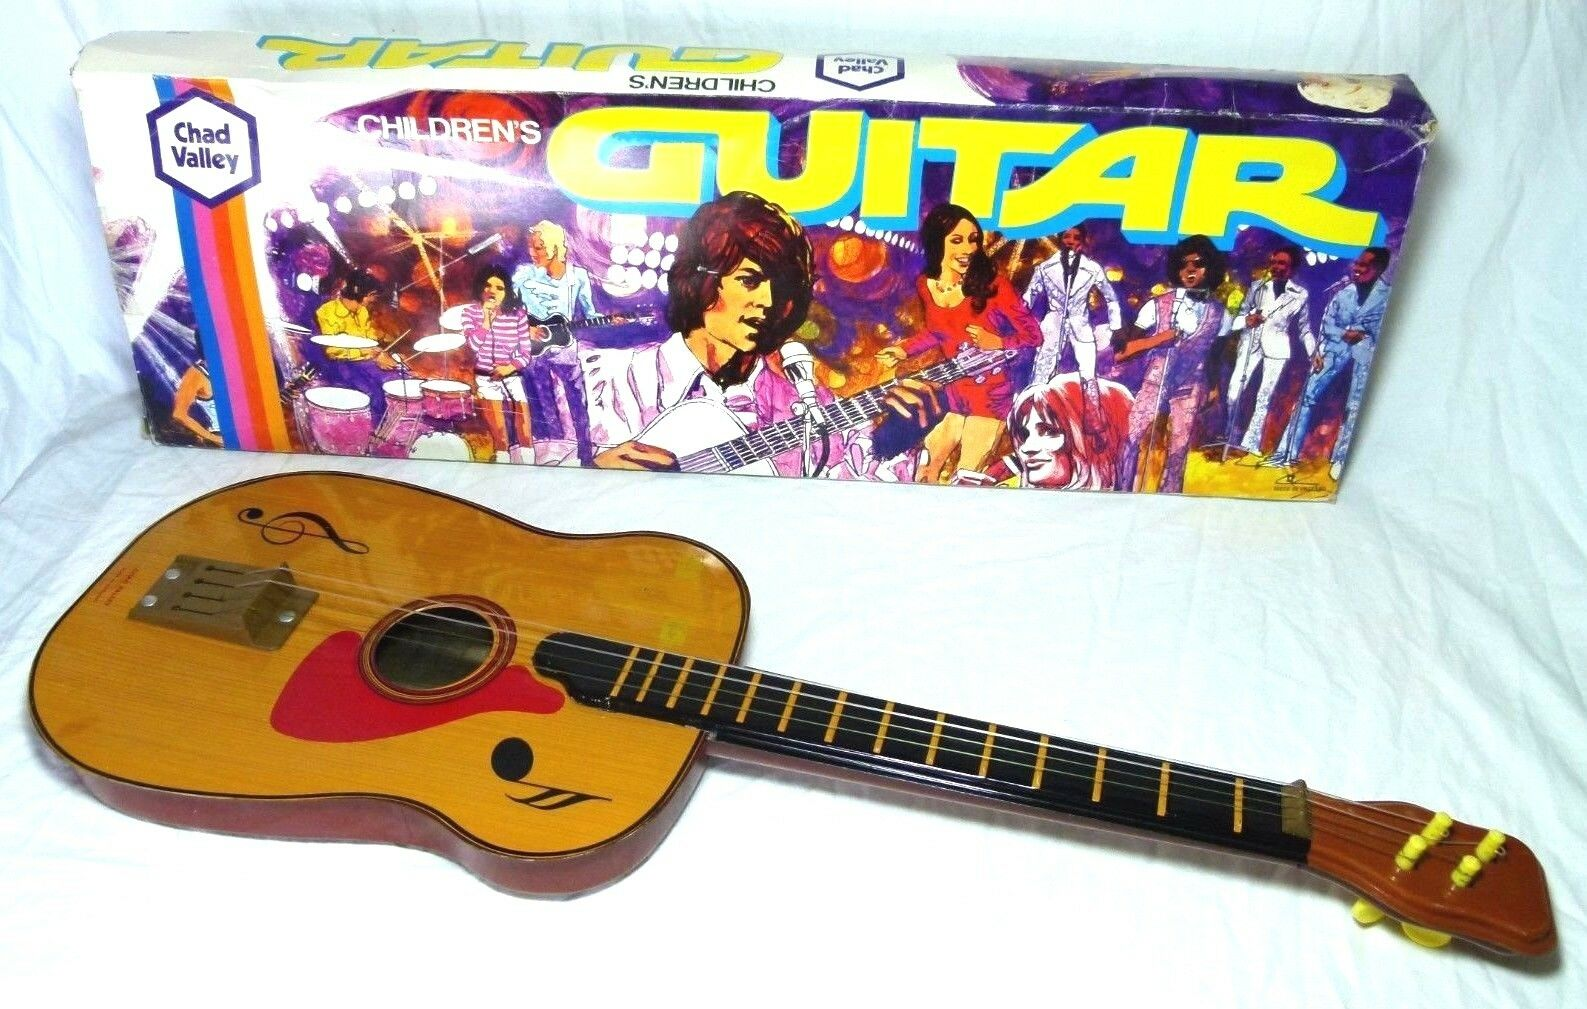 BOXED BOXED CHAD VALLEY TIN TOY LITHOGRAPHED WOOD EFFECT TINPLATE GUITAR UKULELE C1970